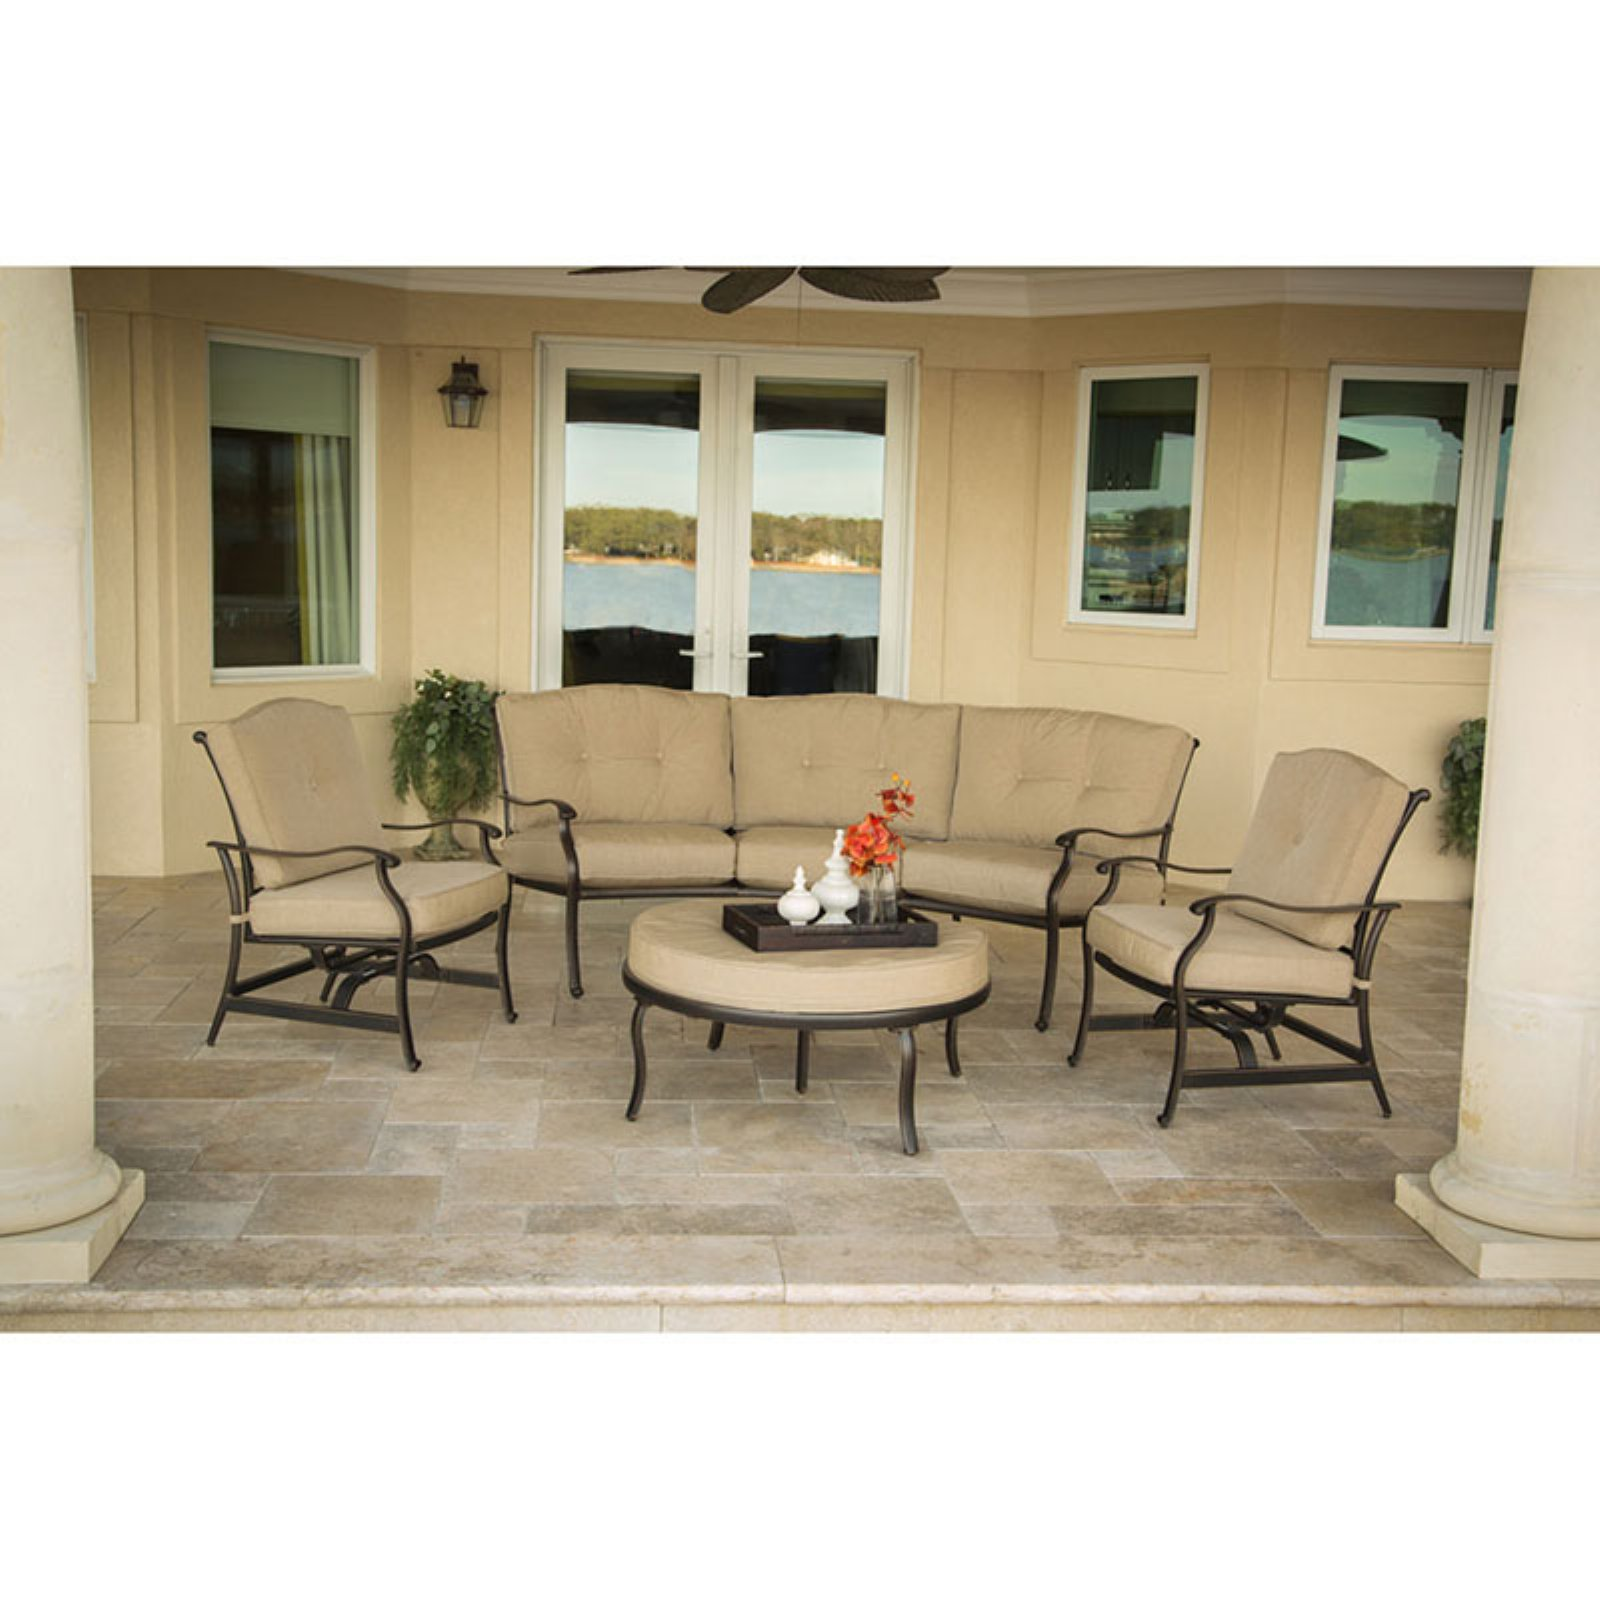 Hanover Outdoor Traditions 4-Piece Patio Set, Natural Oat